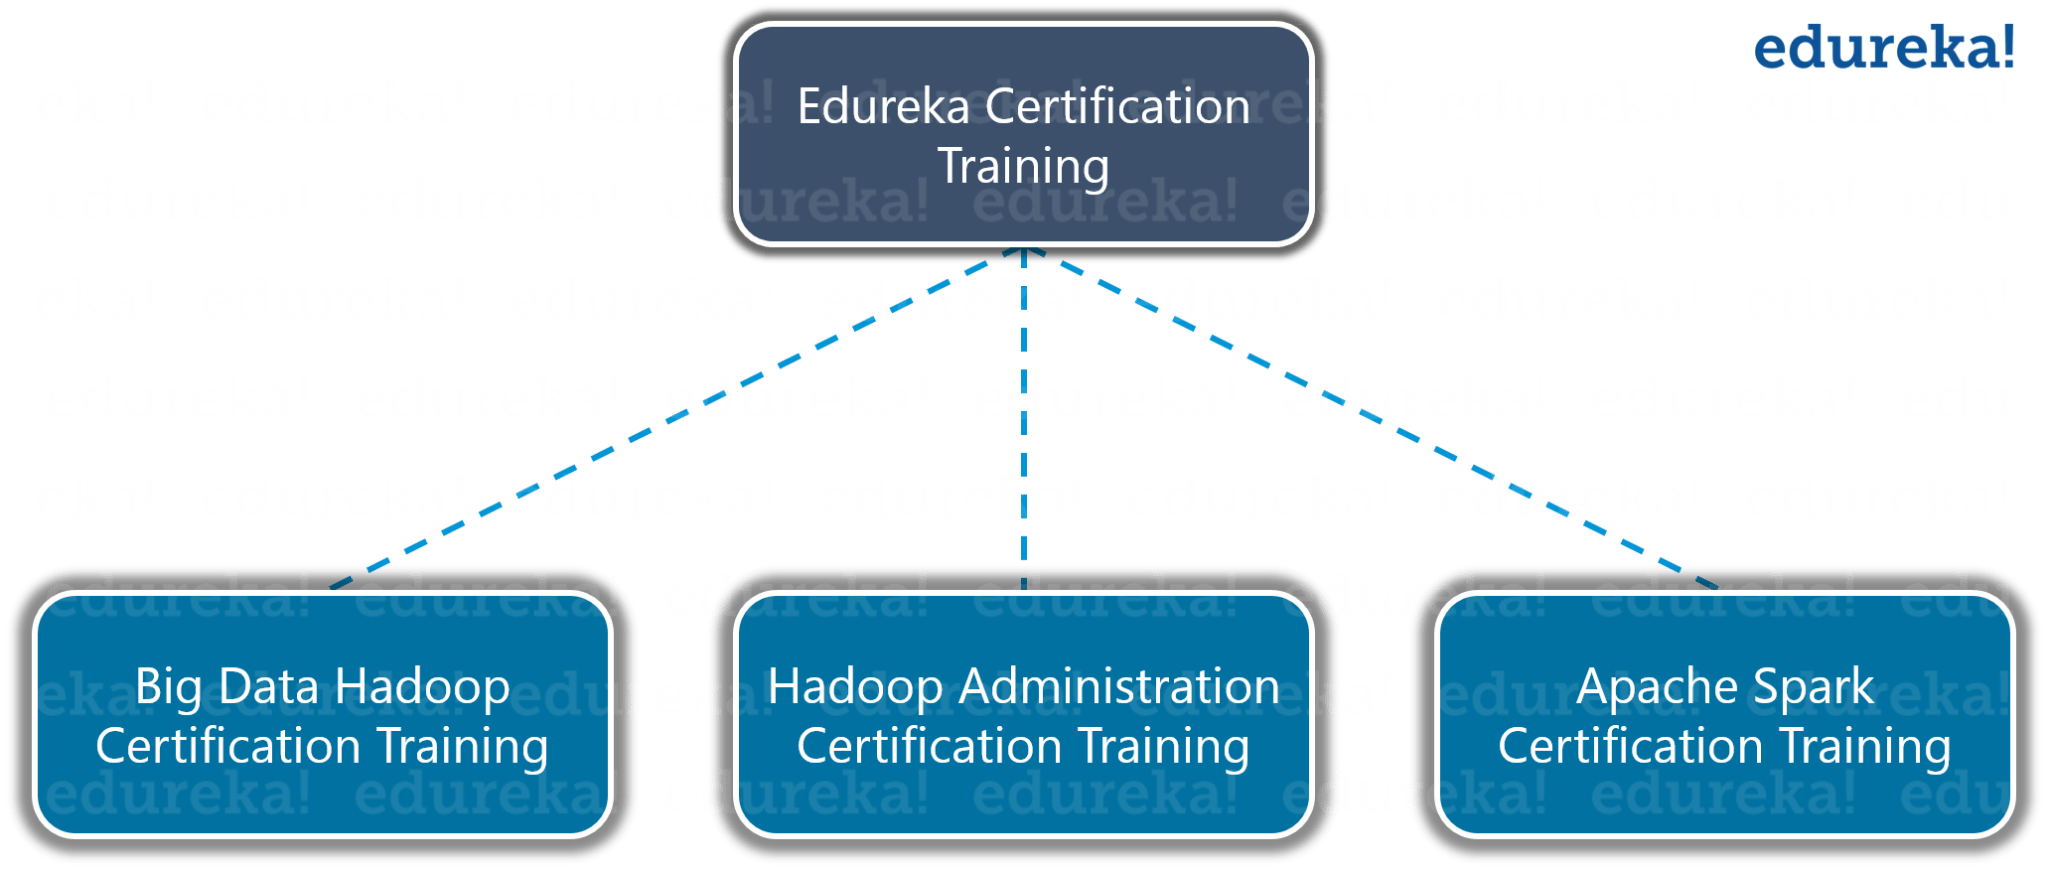 Hadoop Certification Cloudera Hortonworks Edureka Big Data